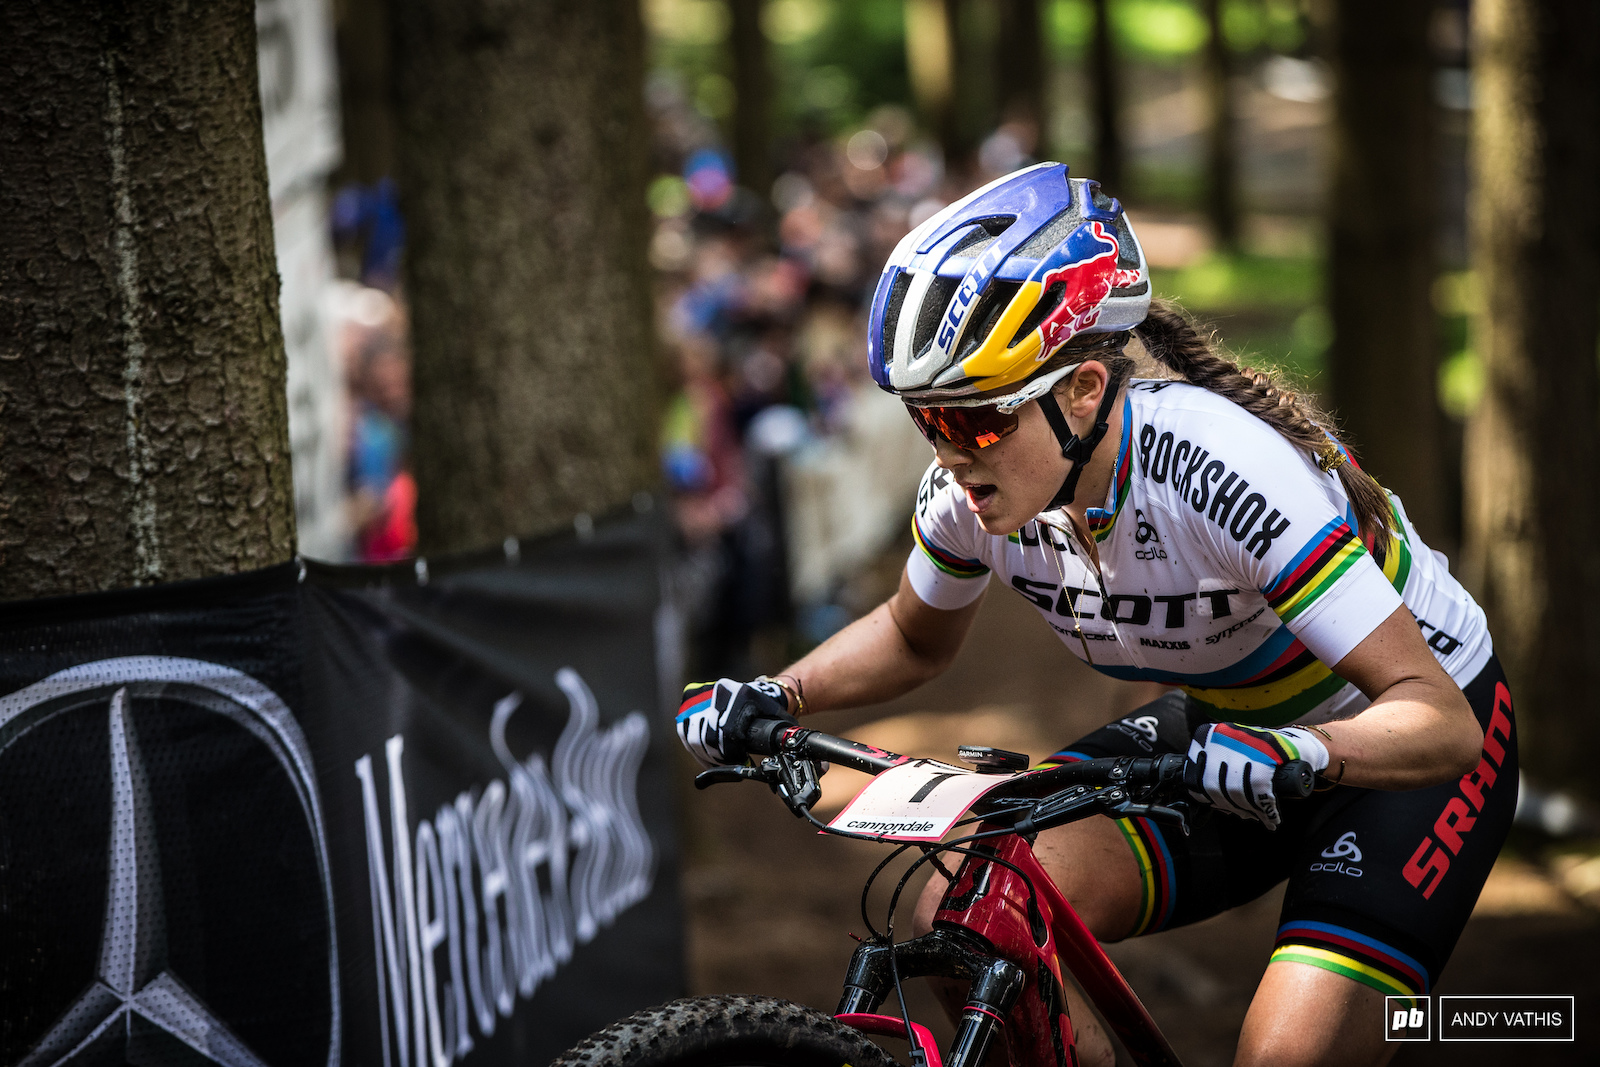 Kate Courtney was two for two after her strong performance in Nove Mesto going into the break in 2019.